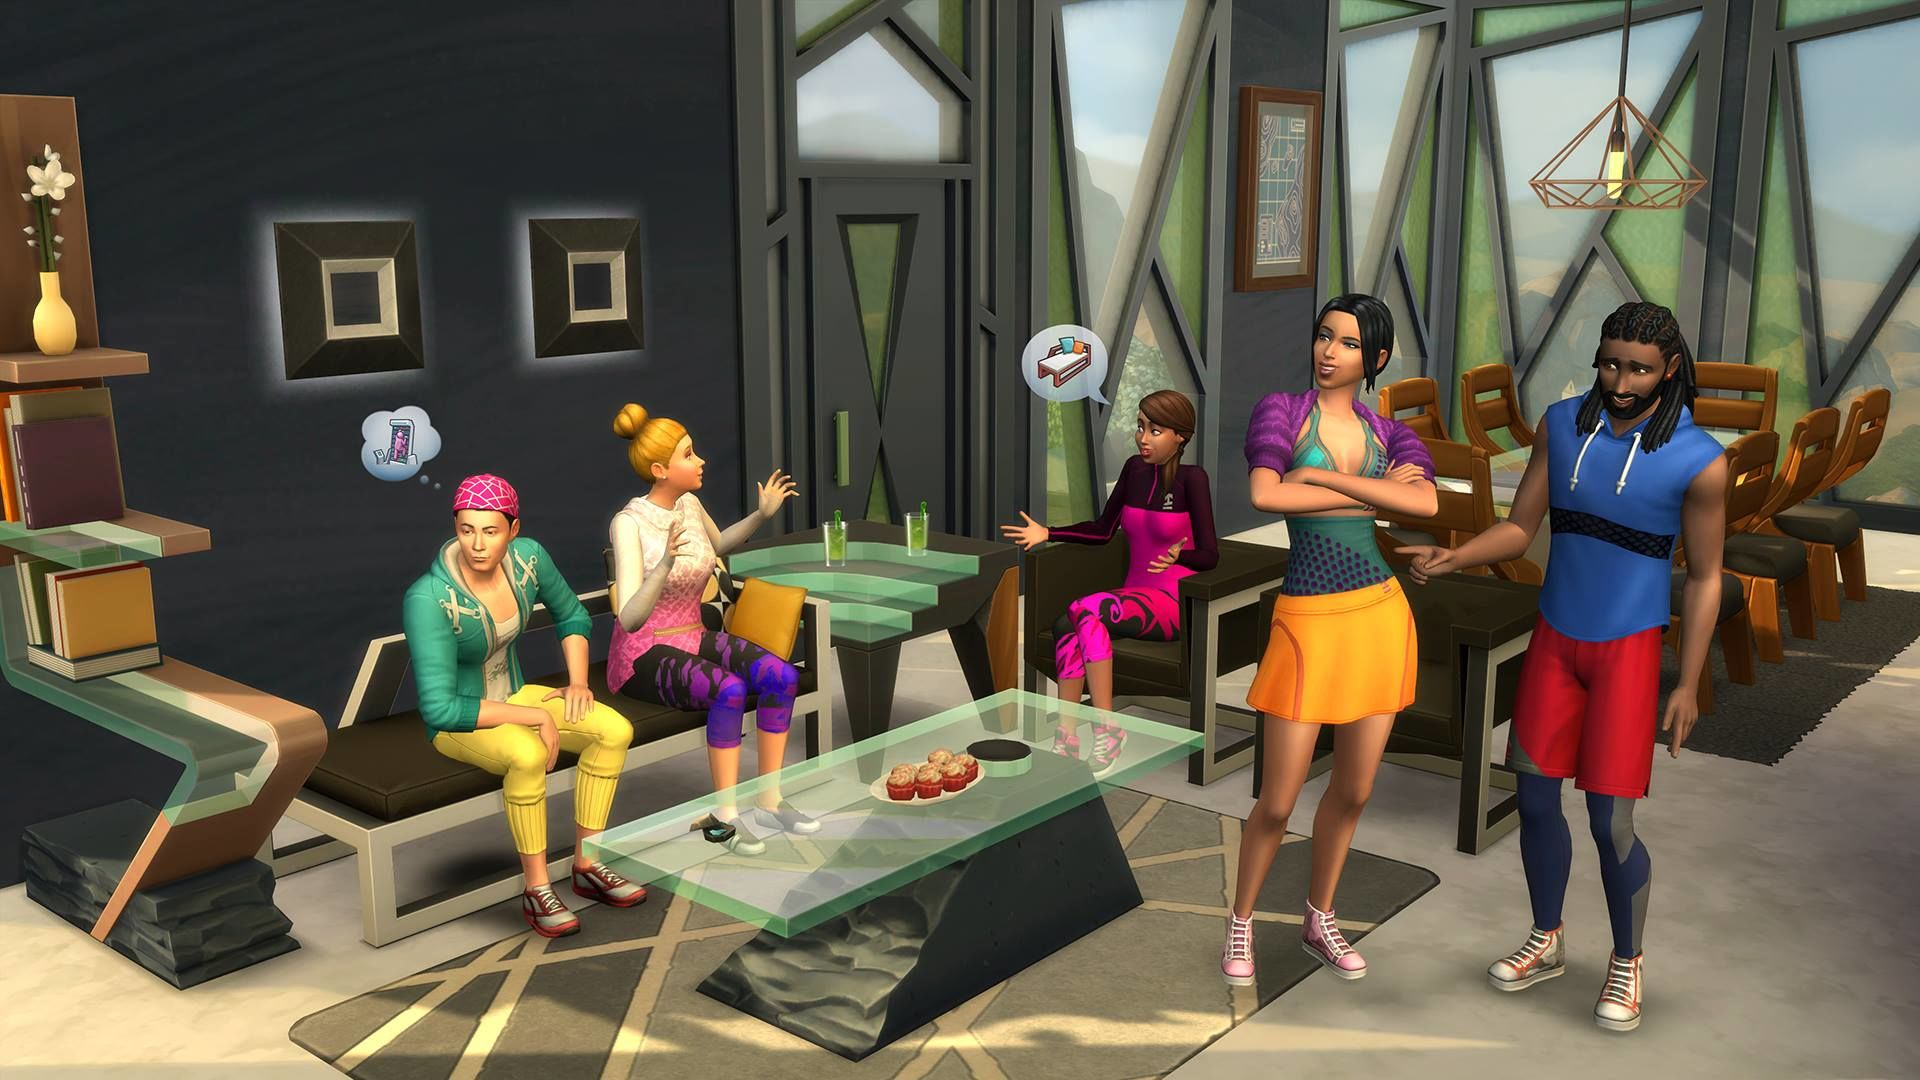 The Sims - fotó: The Sims/facebook